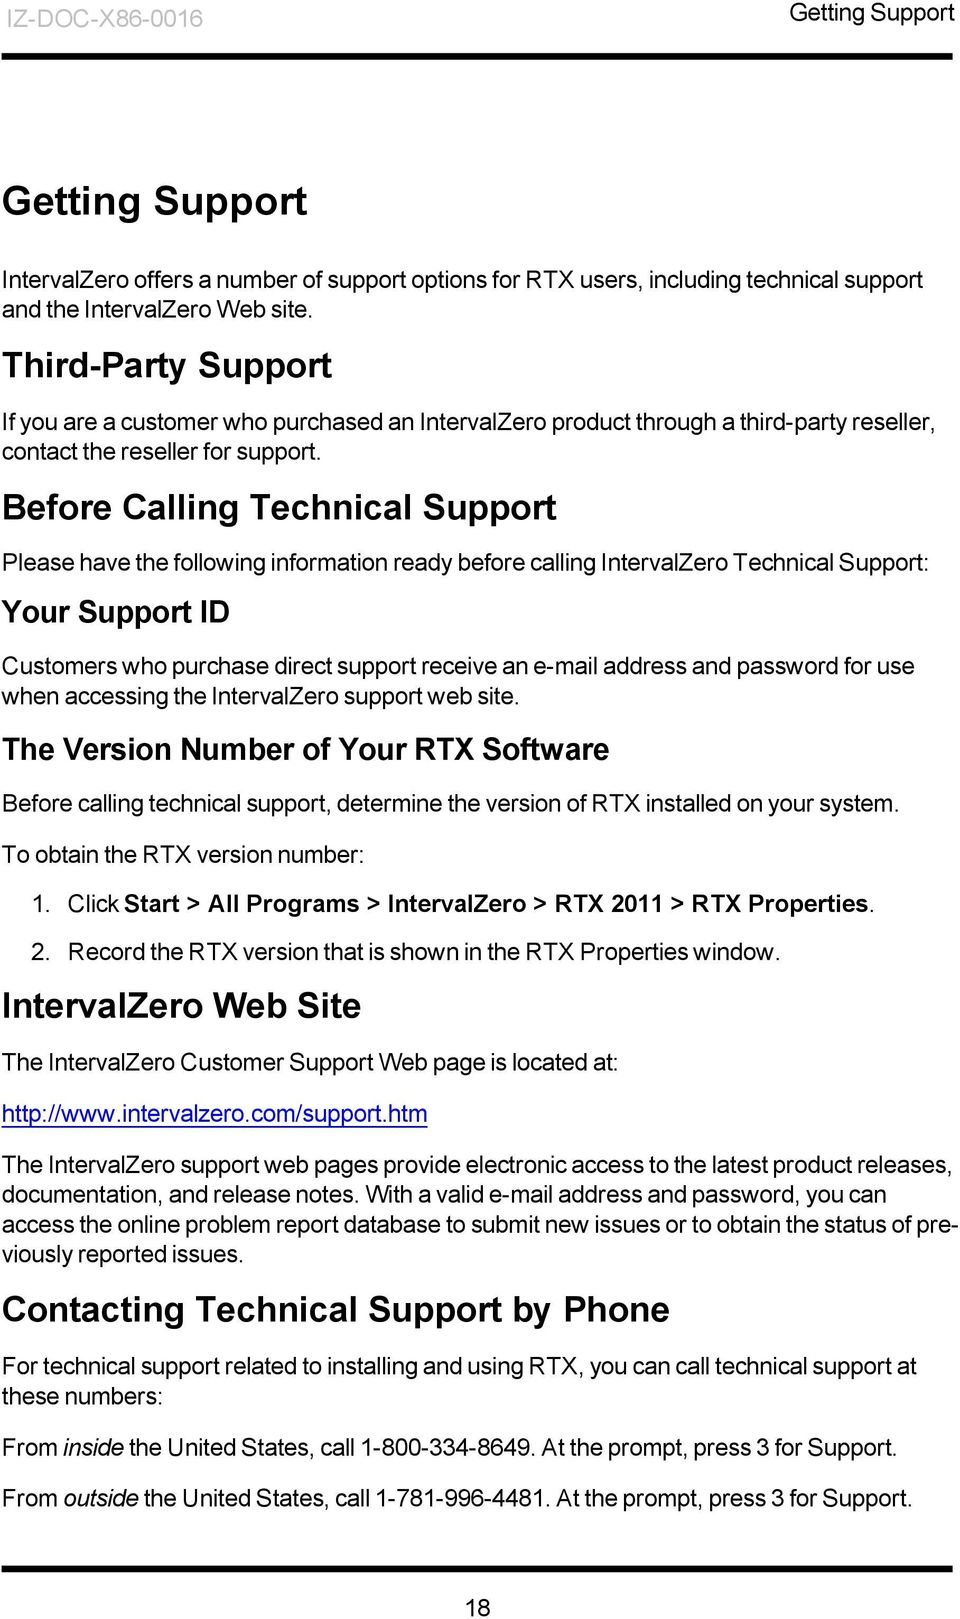 Before Calling Technical Support Please have the following information ready before calling IntervalZero Technical Support: Your Support ID Customers who purchase direct support receive an e-mail